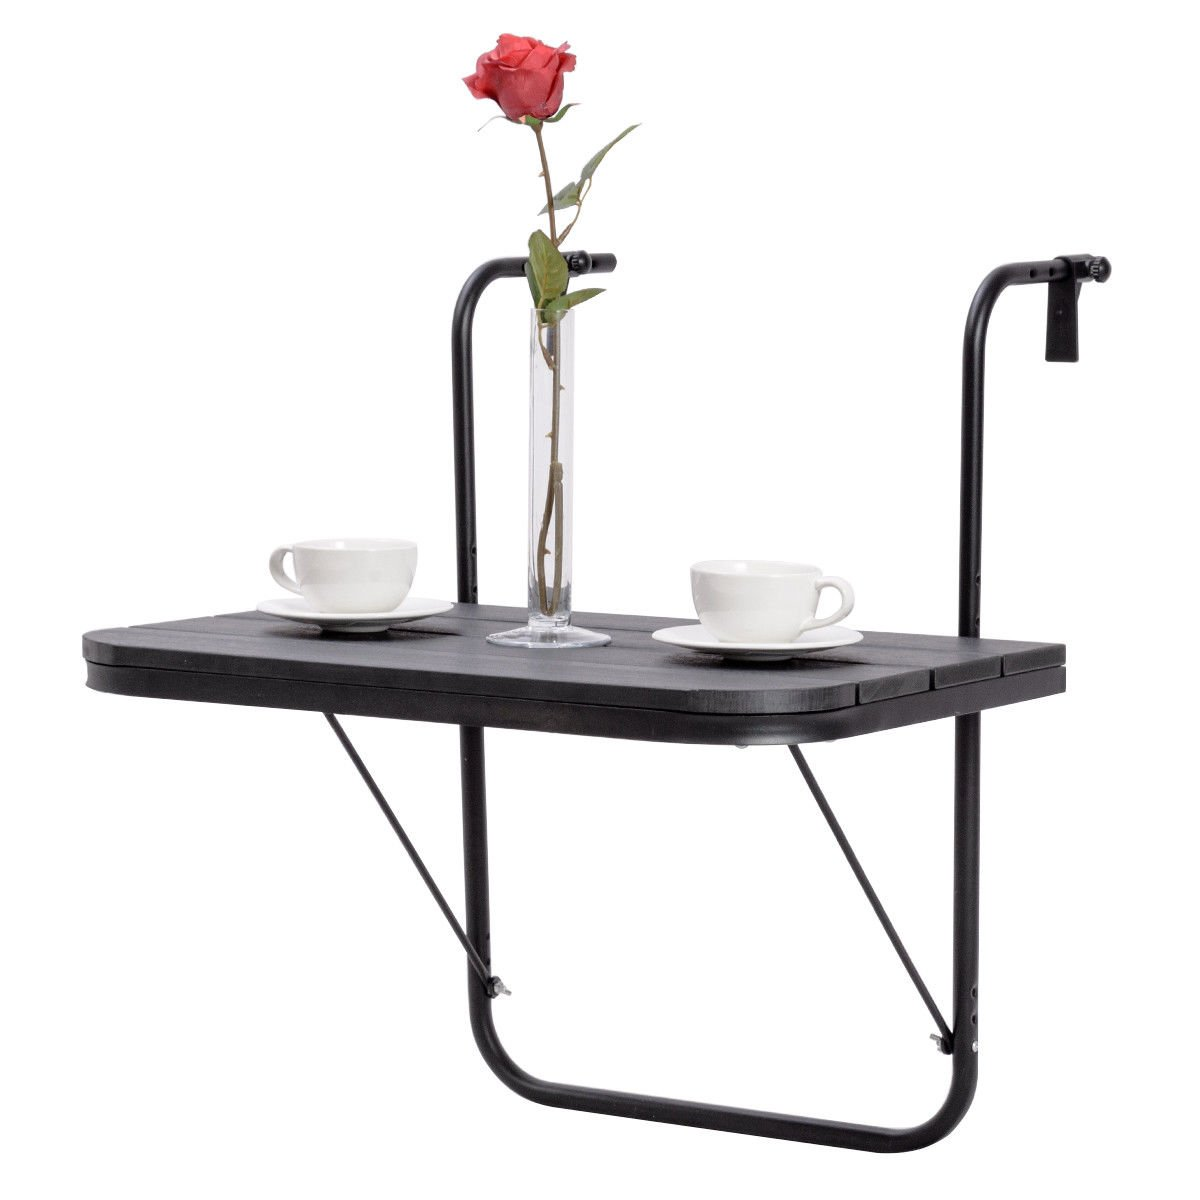 Adjustable Folding Deck Table Patio Balcony Serving Table Stand Hanging Railing